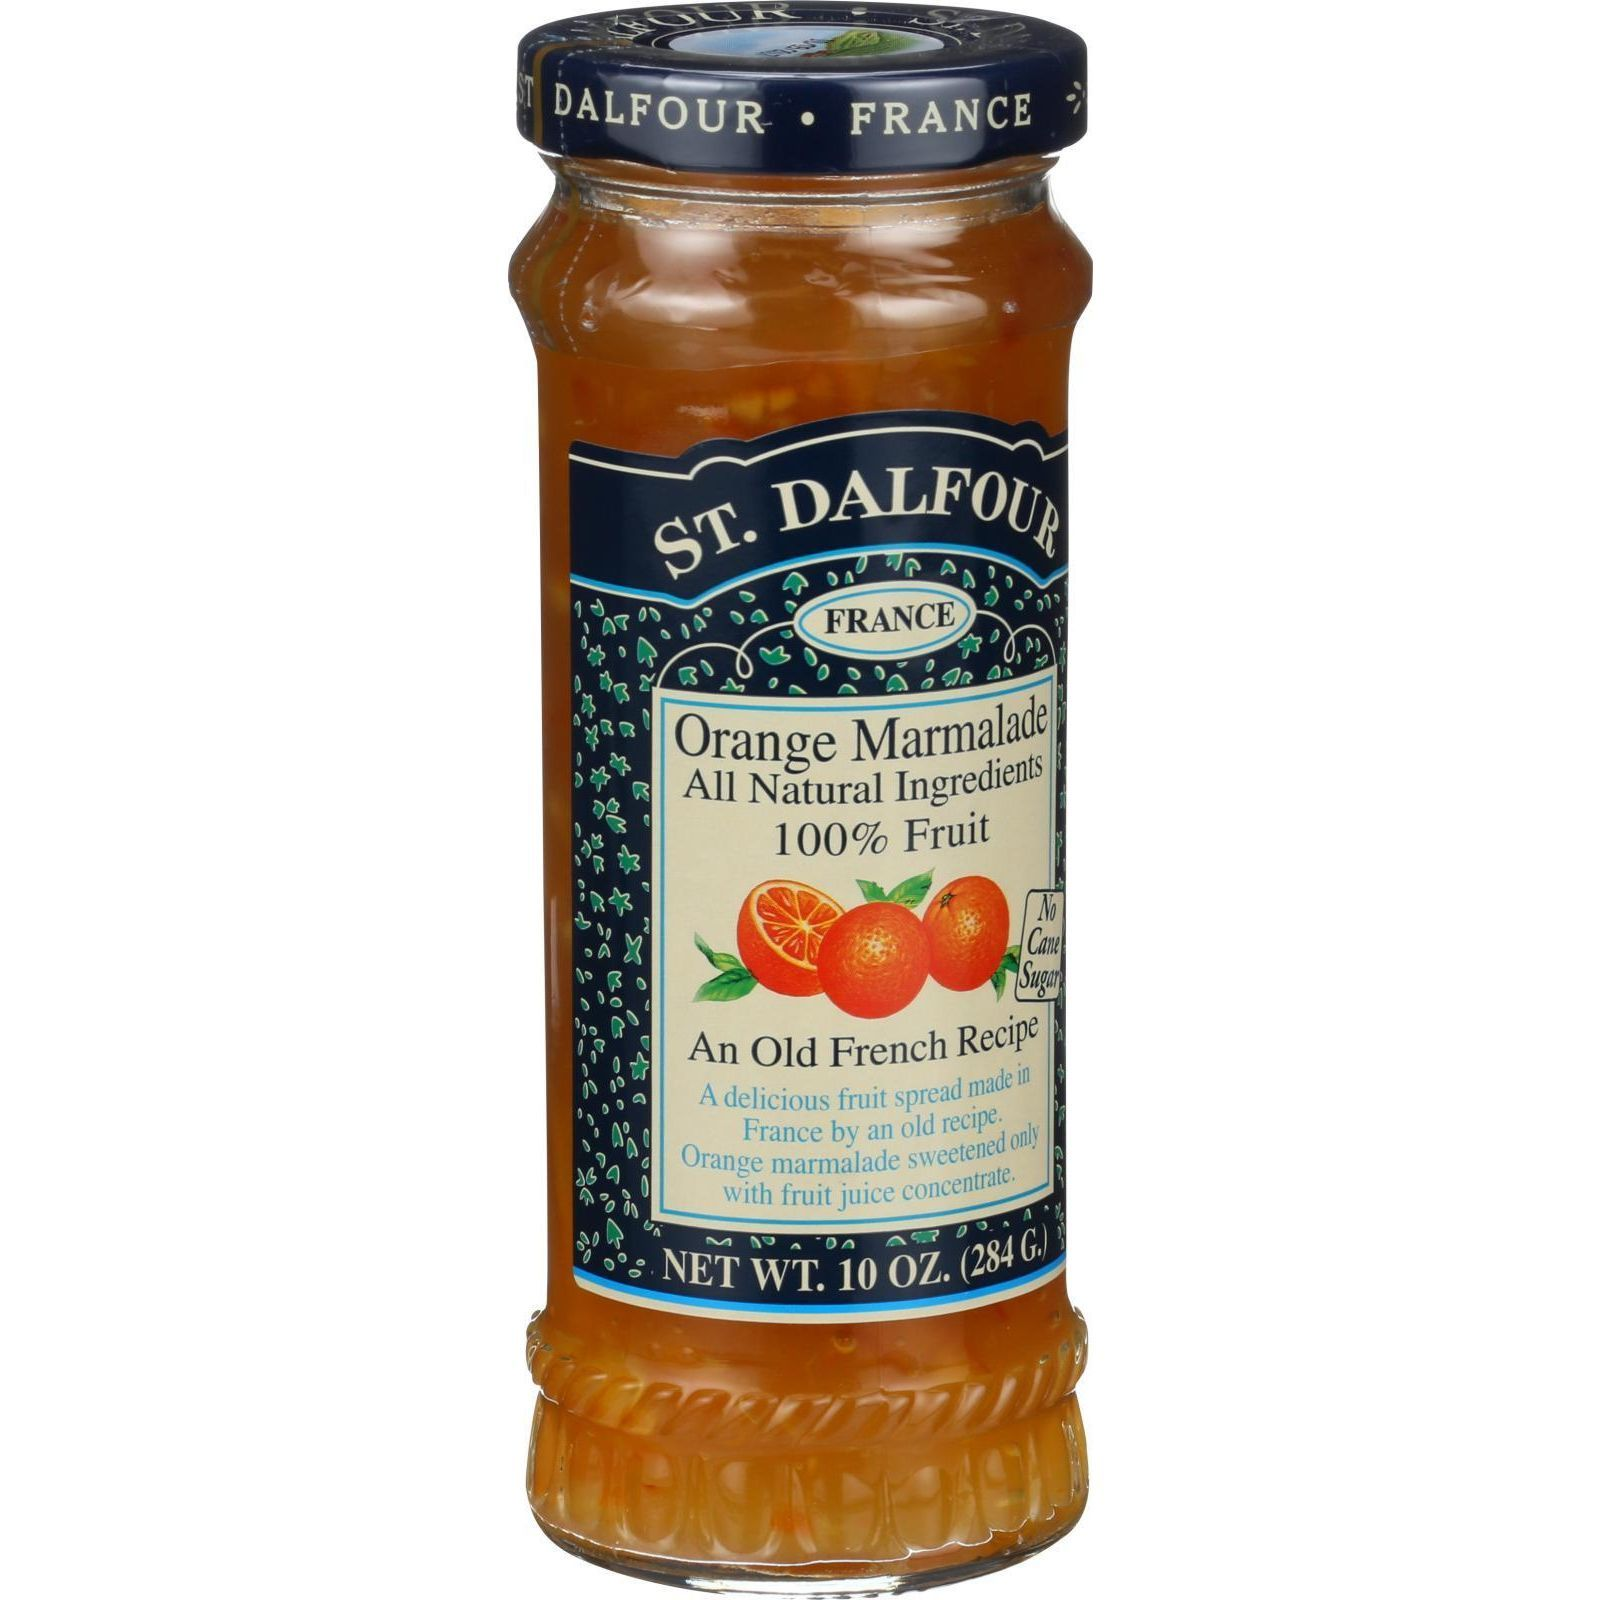 St Dalfour Fruit Spread - Deluxe - 100 Percent Fruit - Orange Marmalade - 10 oz - Case of 6